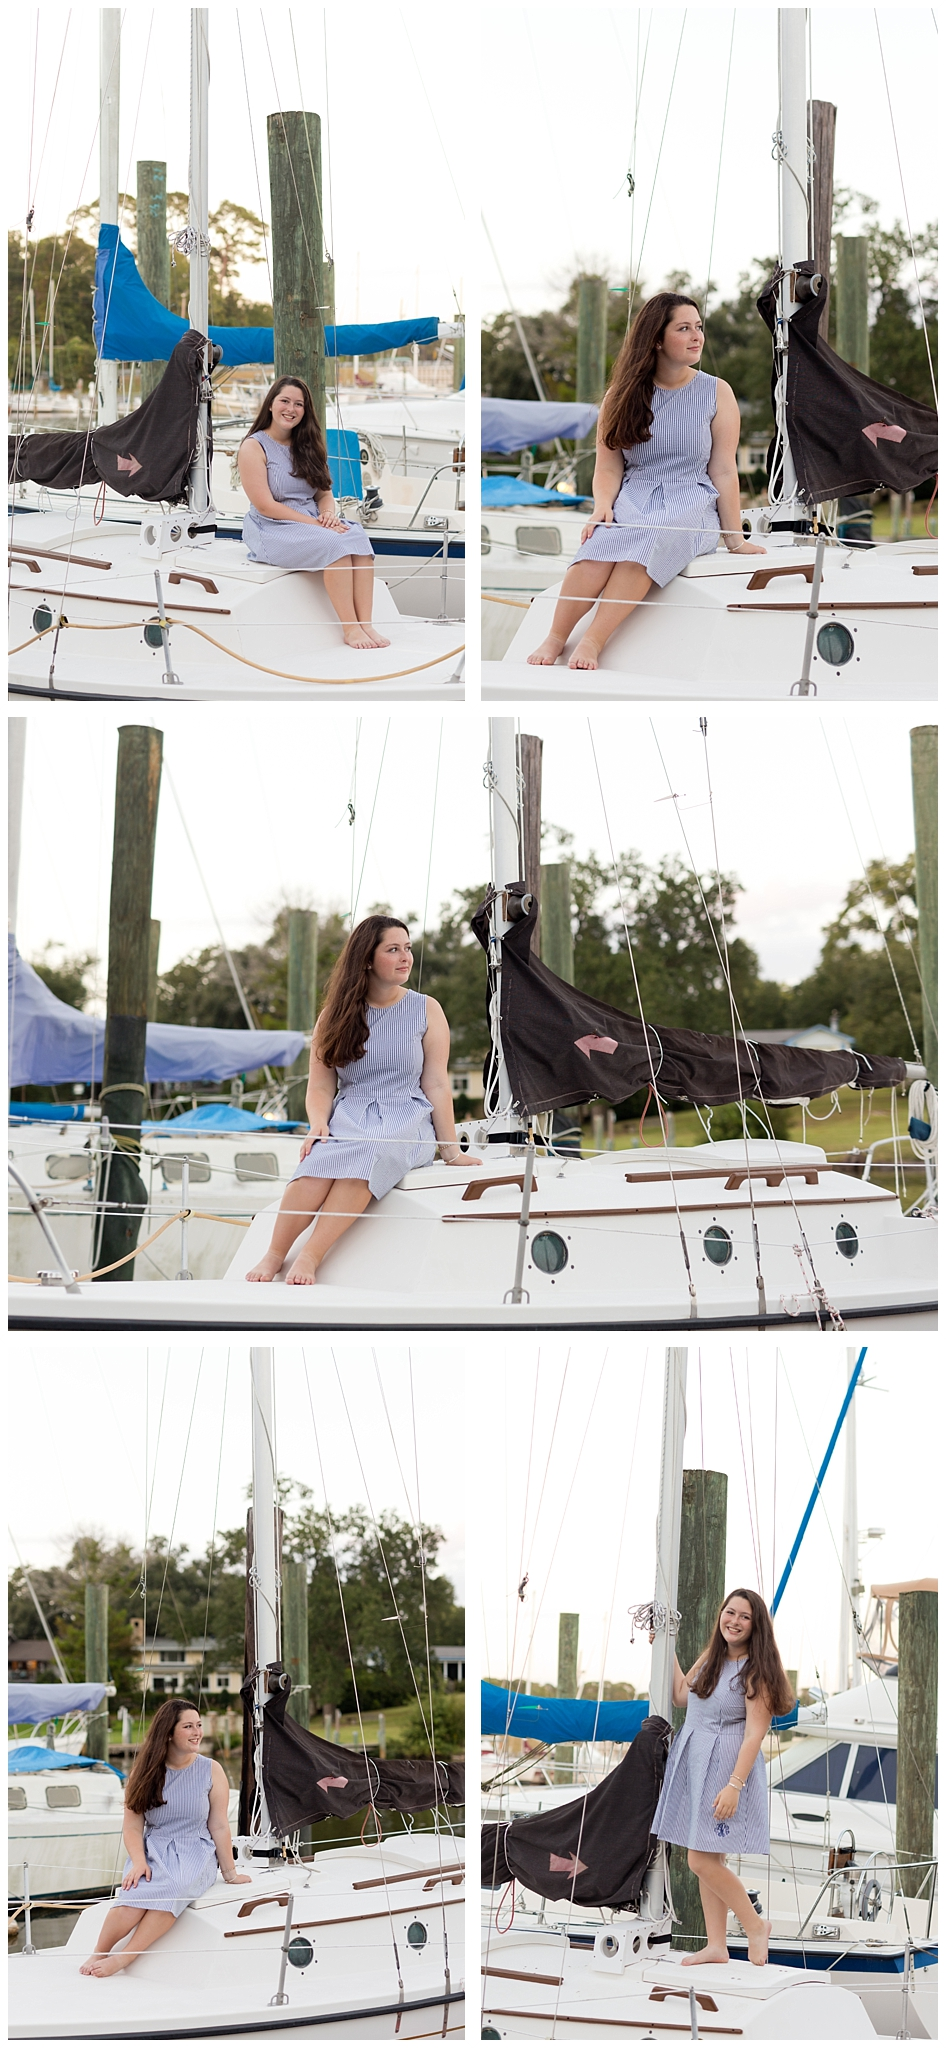 nautical senior portrait session with sailboat yacht (Ocean Springs, Mississippi harbor)